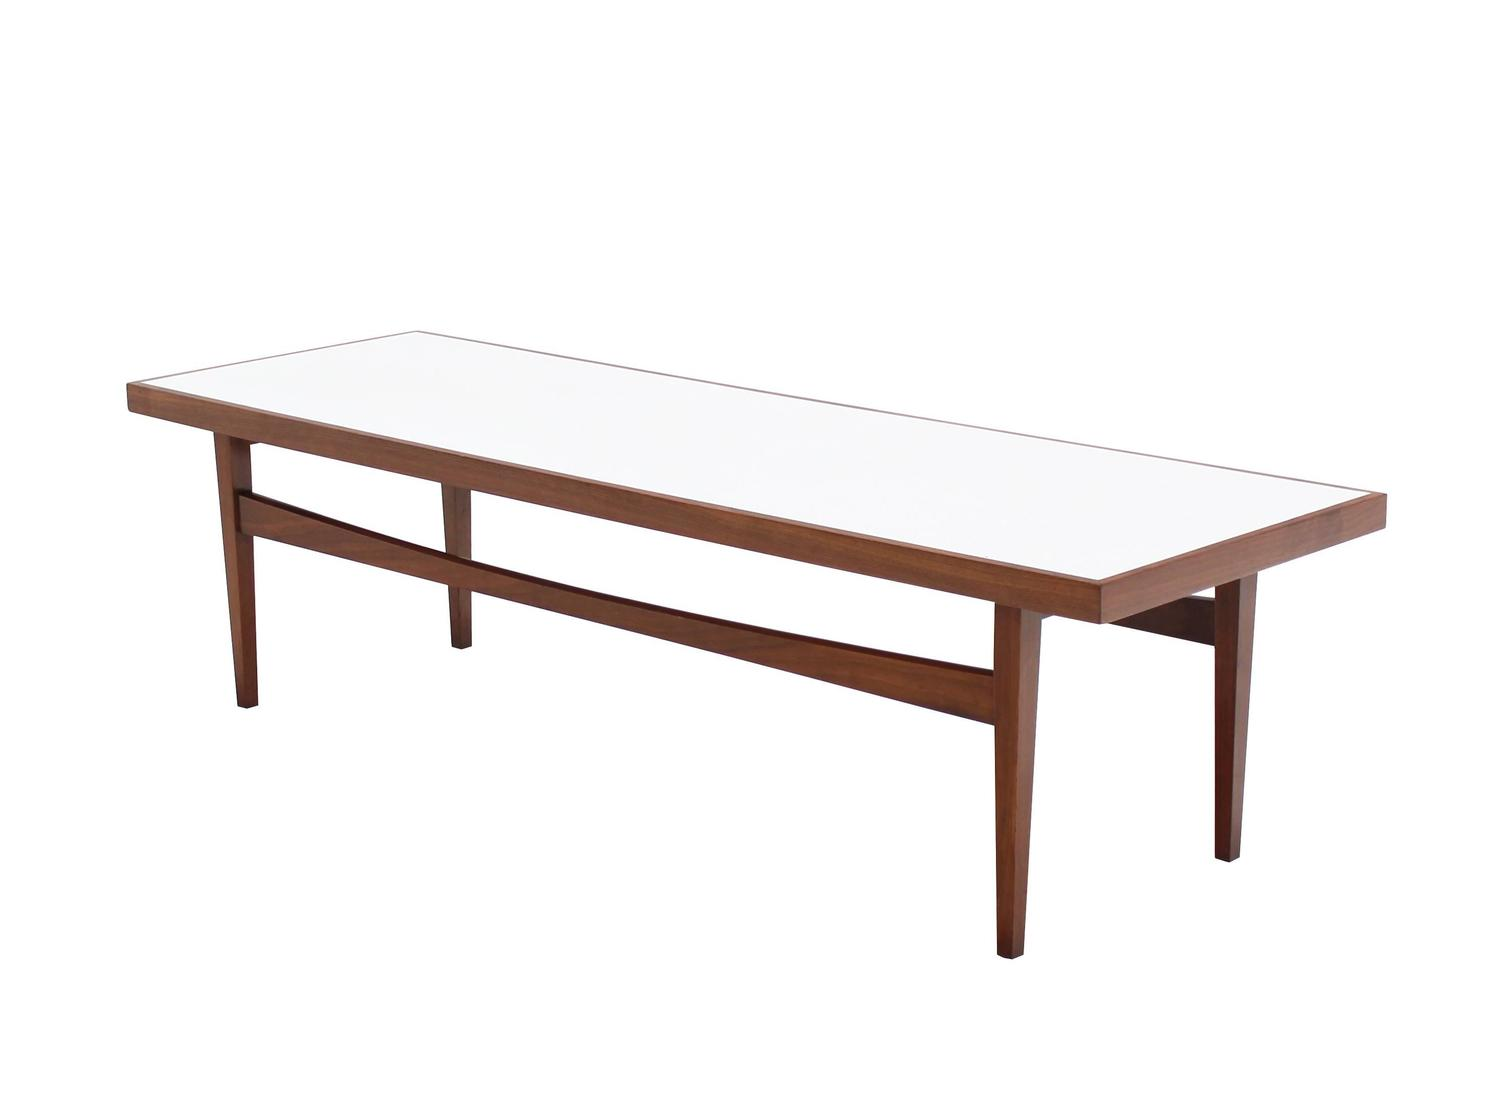 walnut long rectangular coffee table for sale at 1stdibs With long rectangle coffee table